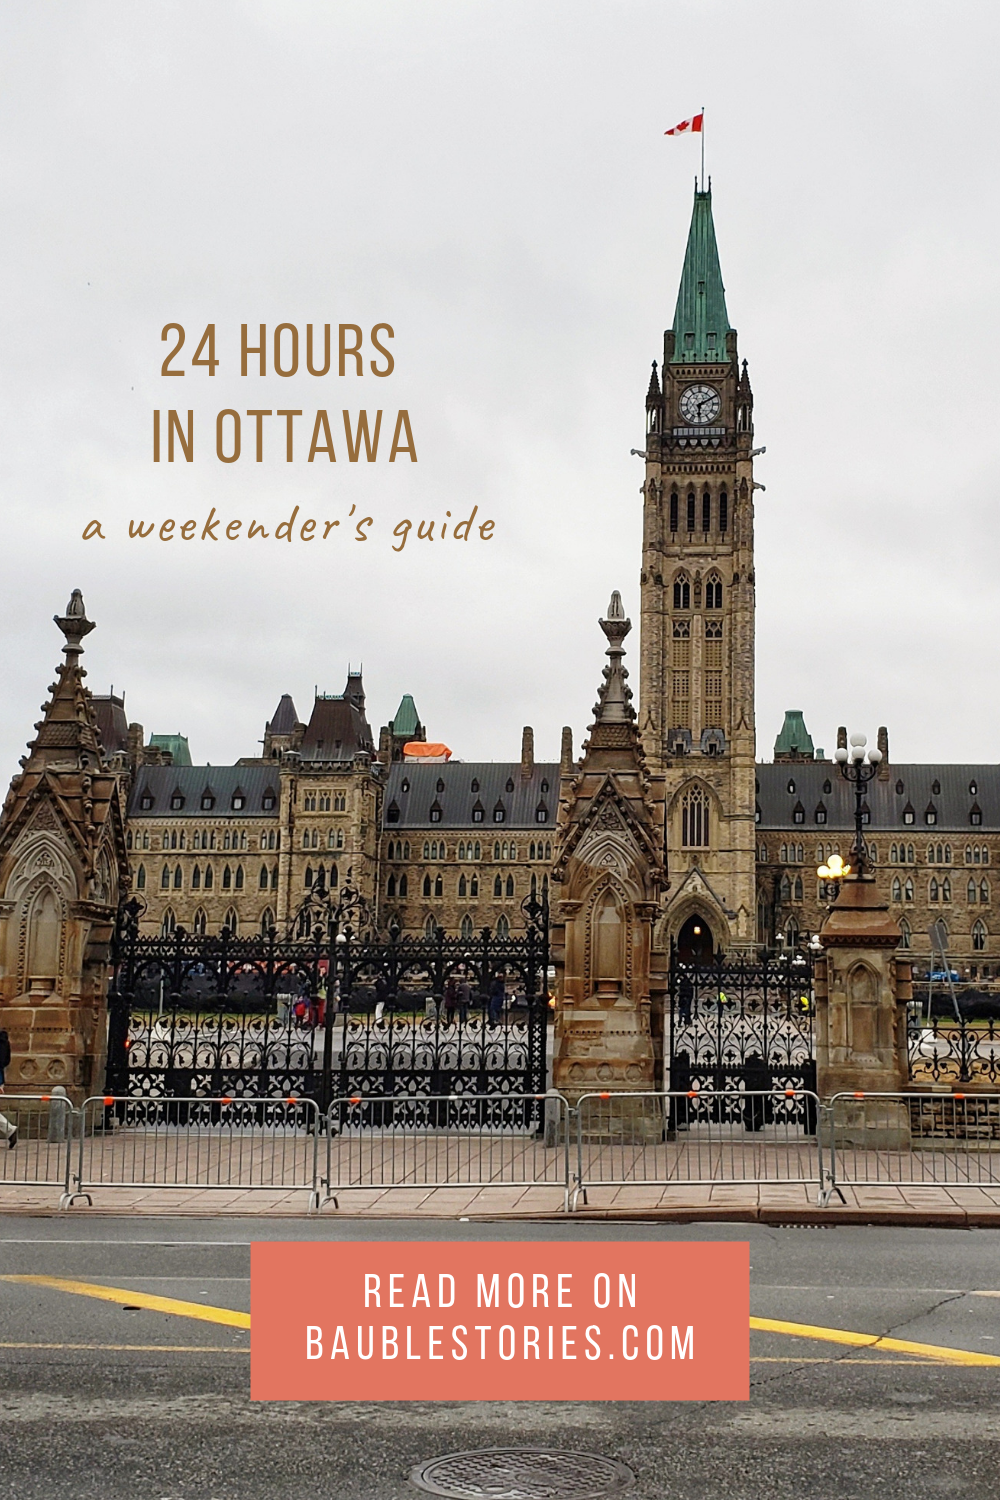 24 hours in Ottawa a weekend guide